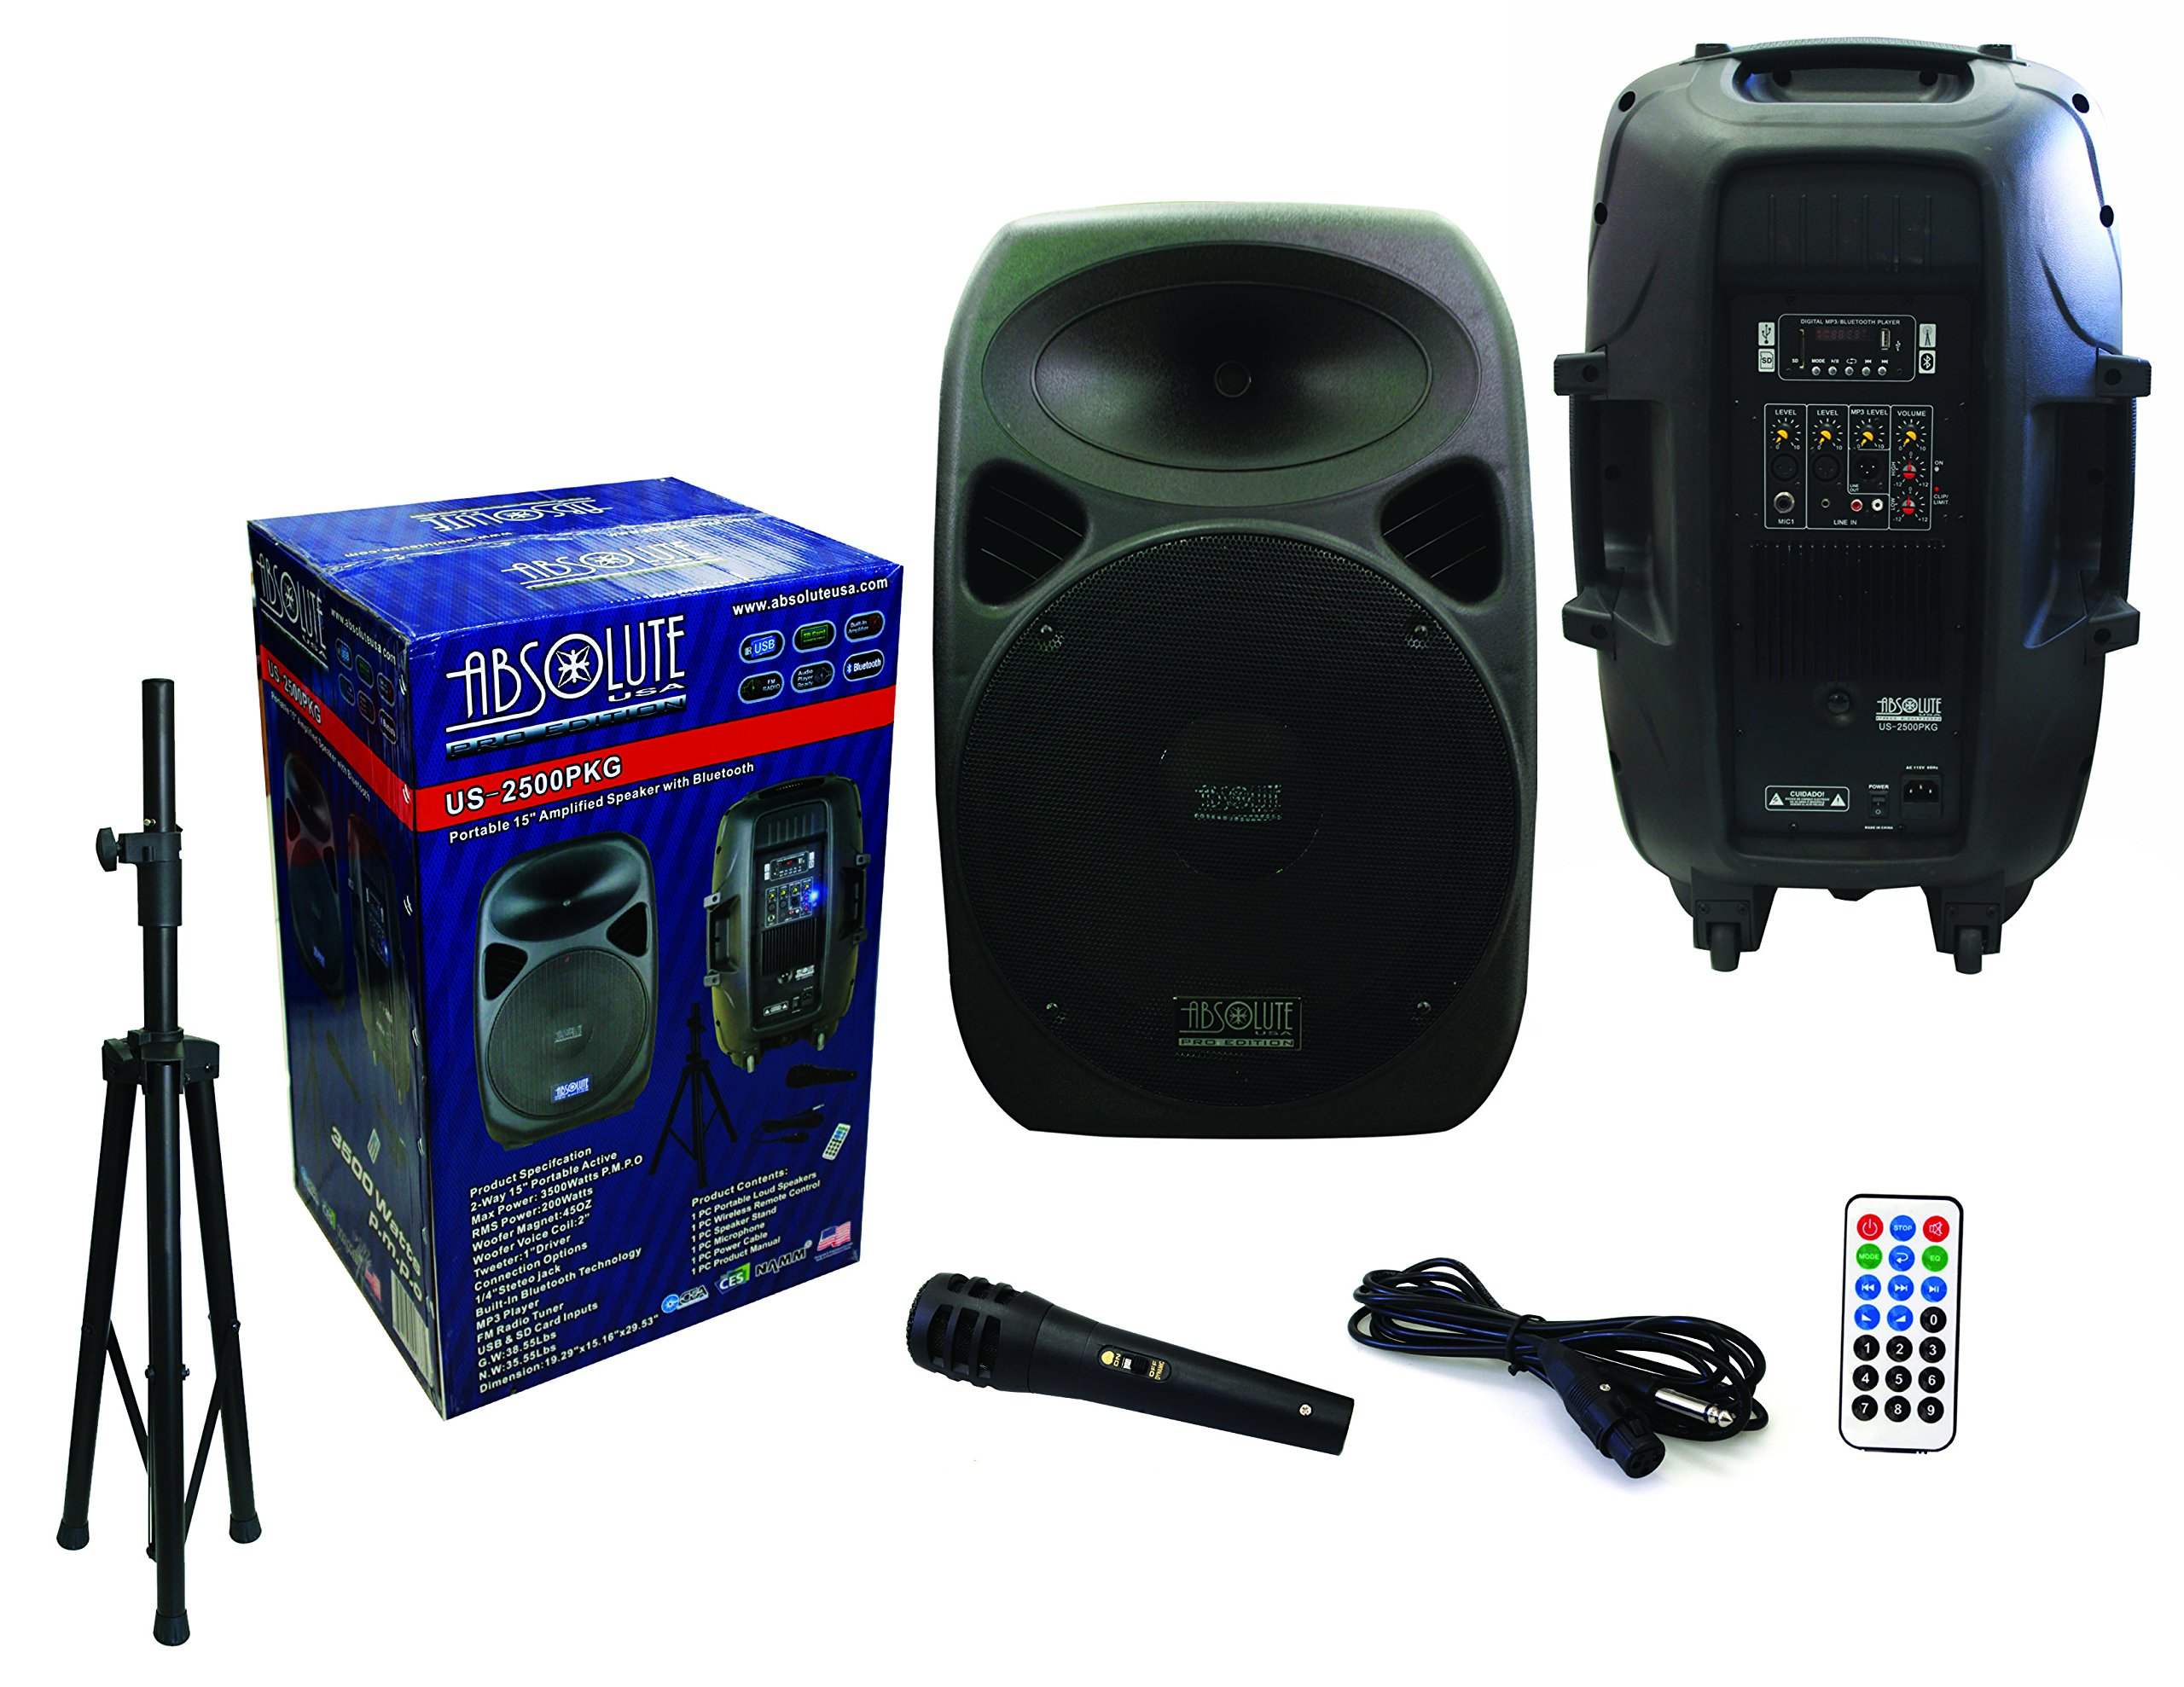 Absolute USA US2500 2-Way 15'' 3500W Speaker Built-In Bluetooth with Wire Microphone & Speaker Stand